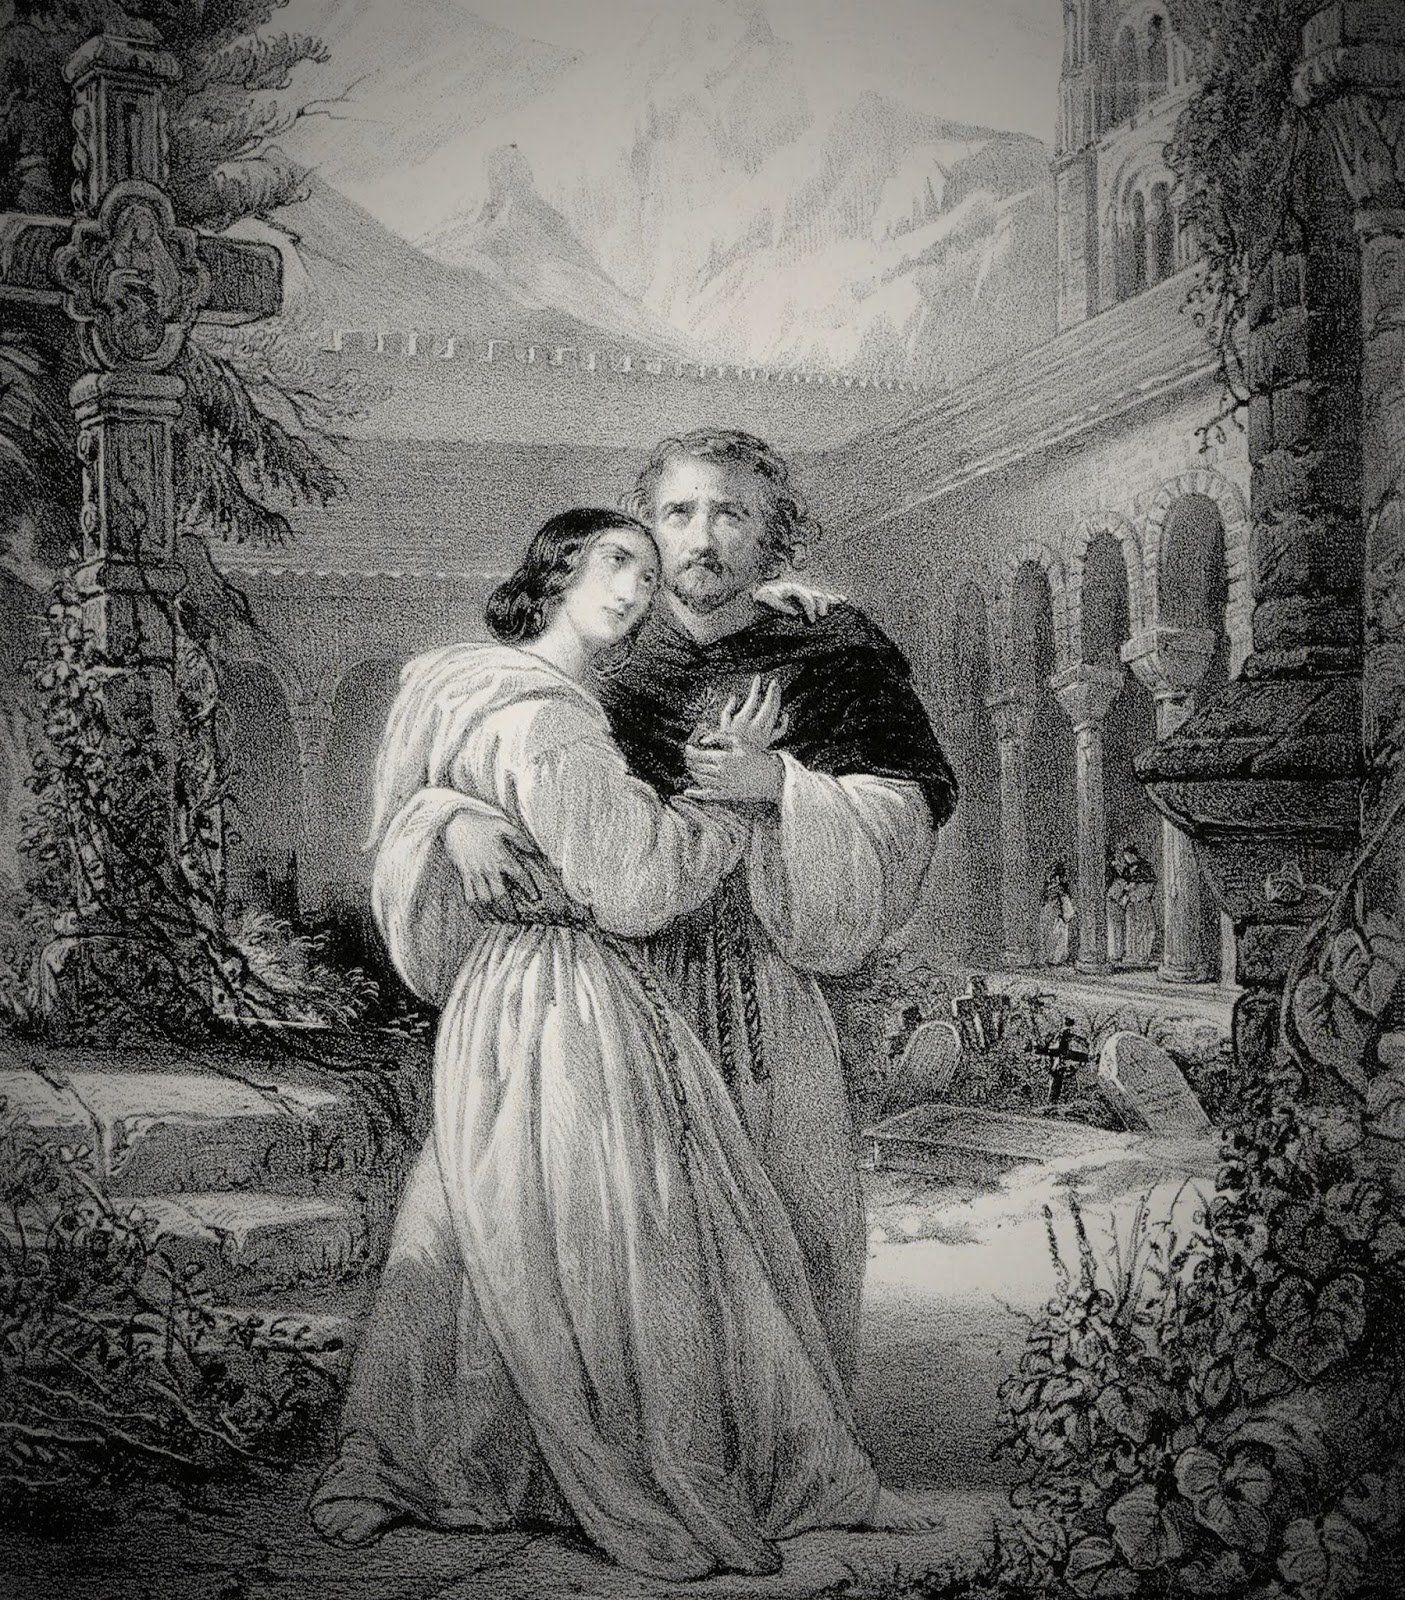 IN PERFORMANCE: Mezzo-soprano Rosine Stoltz as Léonor and tenor Gilbert Duprez as Fernand in the first production of Gaetano Donizetti's LA FAVORITE - Paris, 1840 [Lithograph by Émile Desmaisons, after François-Gabriel Lépaulle; public domain]